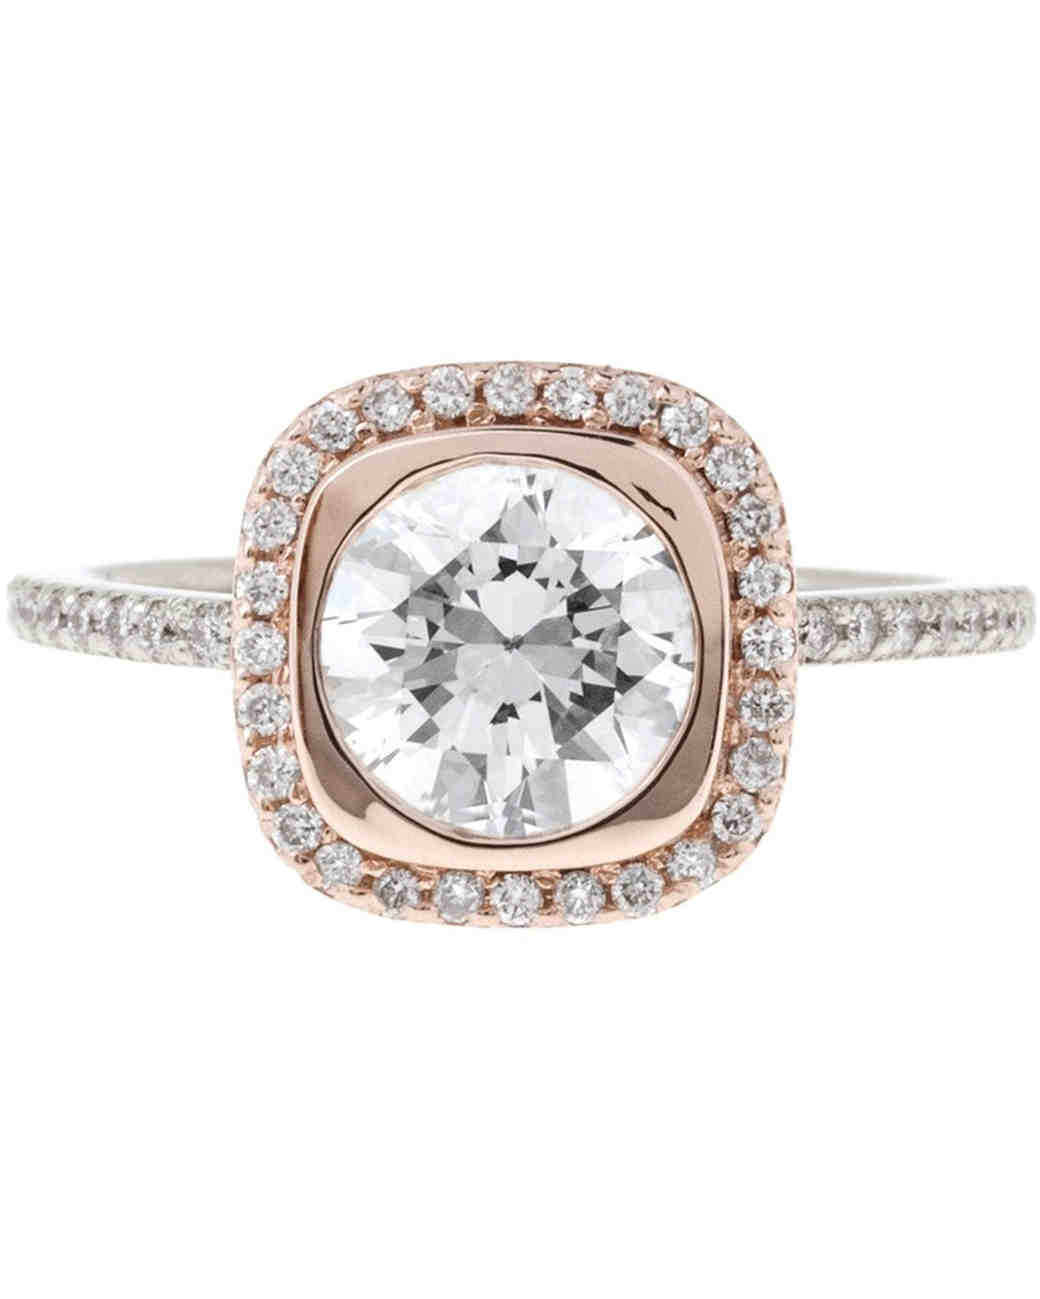 Bario Neal rose gold diamond halo engagement ring